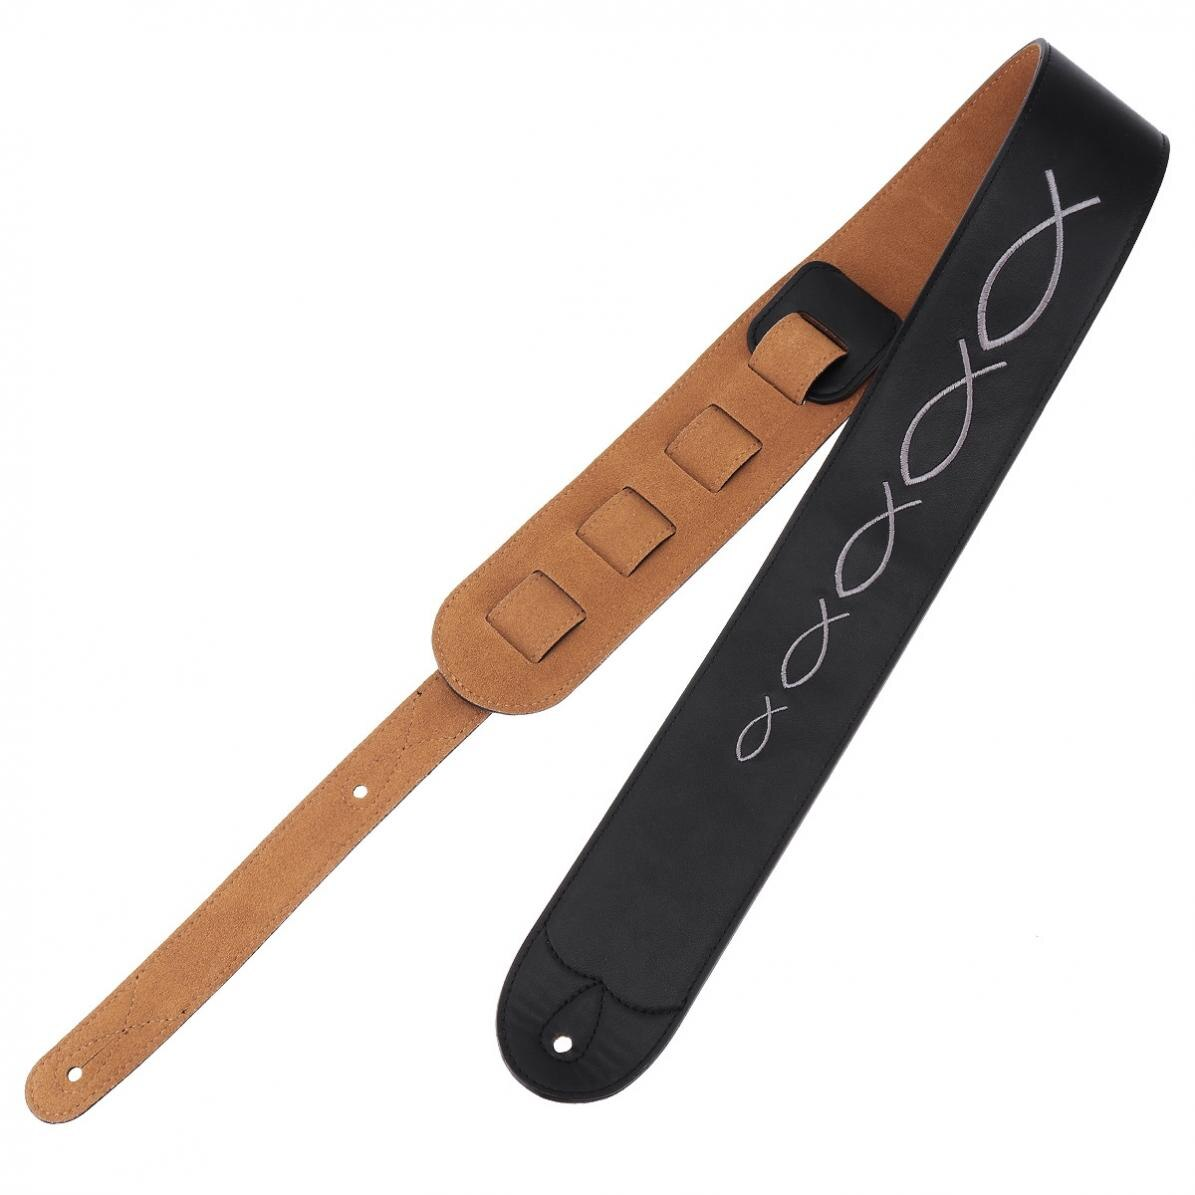 Guitar Strap Genuine Leather Embroidery Guitar Strap 6.5cm Widen with Cow Suede Bottom for Acoustic Electric Bass Guitar enlarge